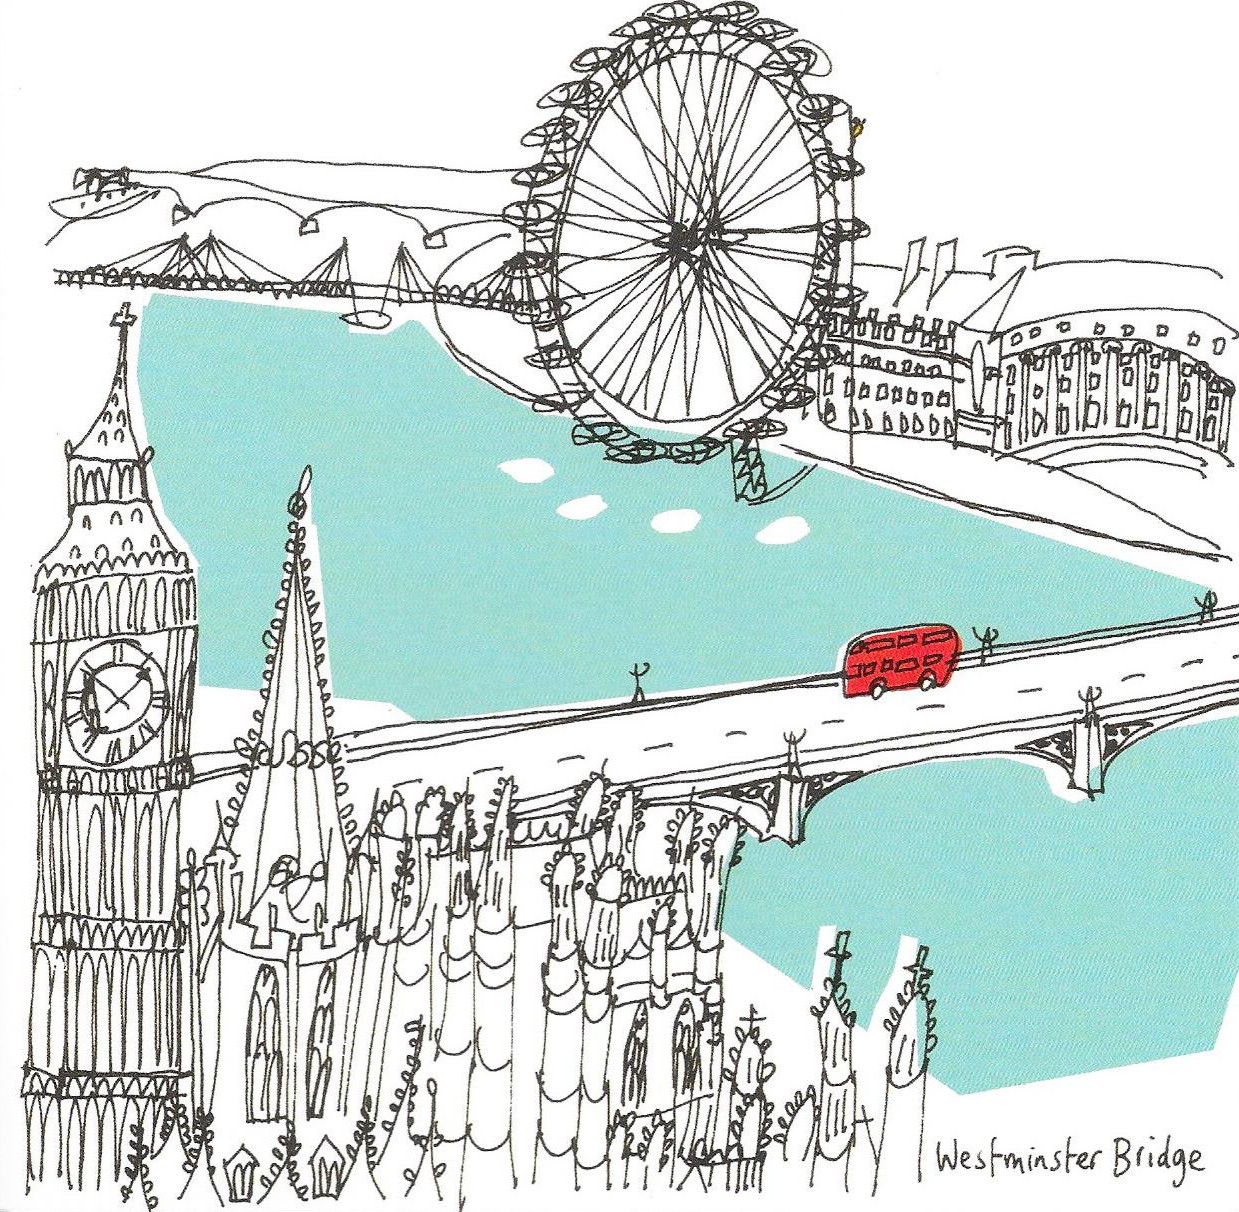 Red bus illustration by Susie Brooks